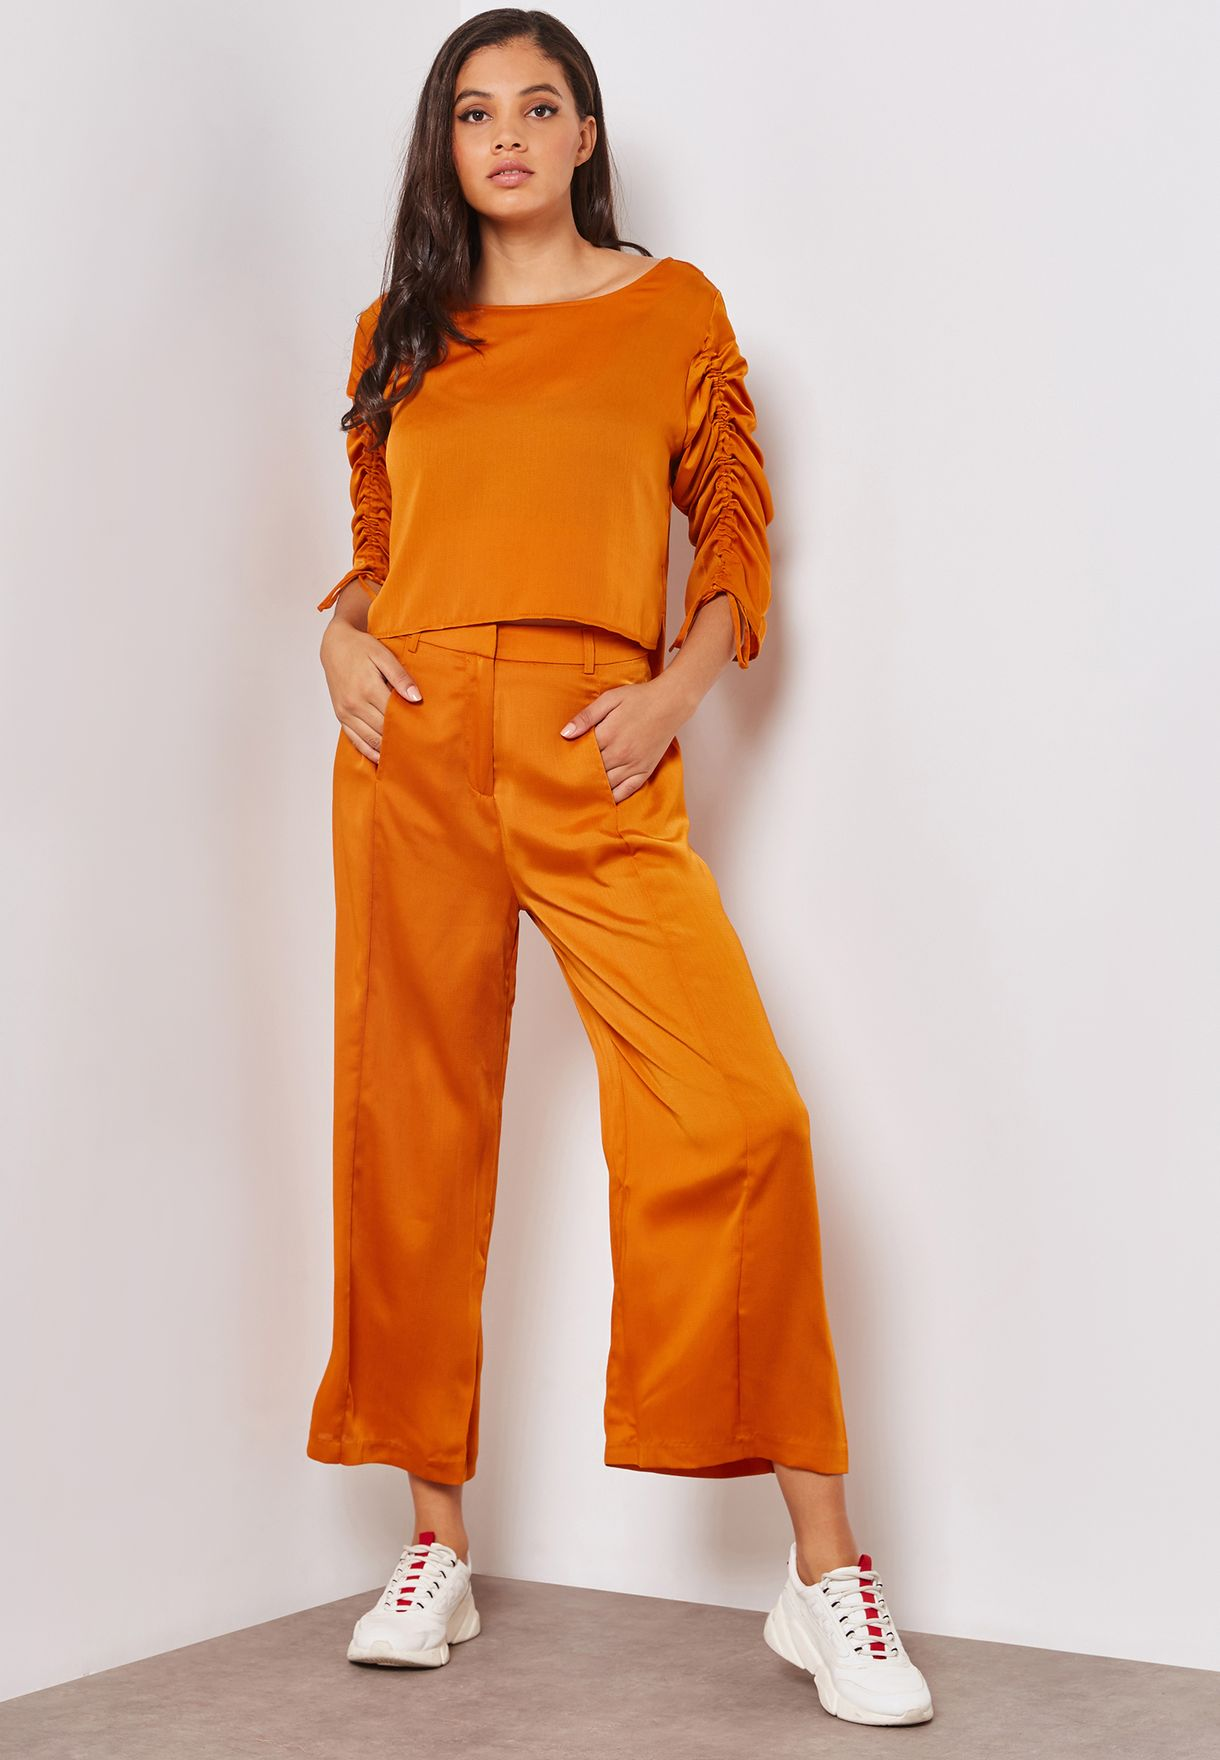 Satin Wide Leg Panelled Pants Co-ord